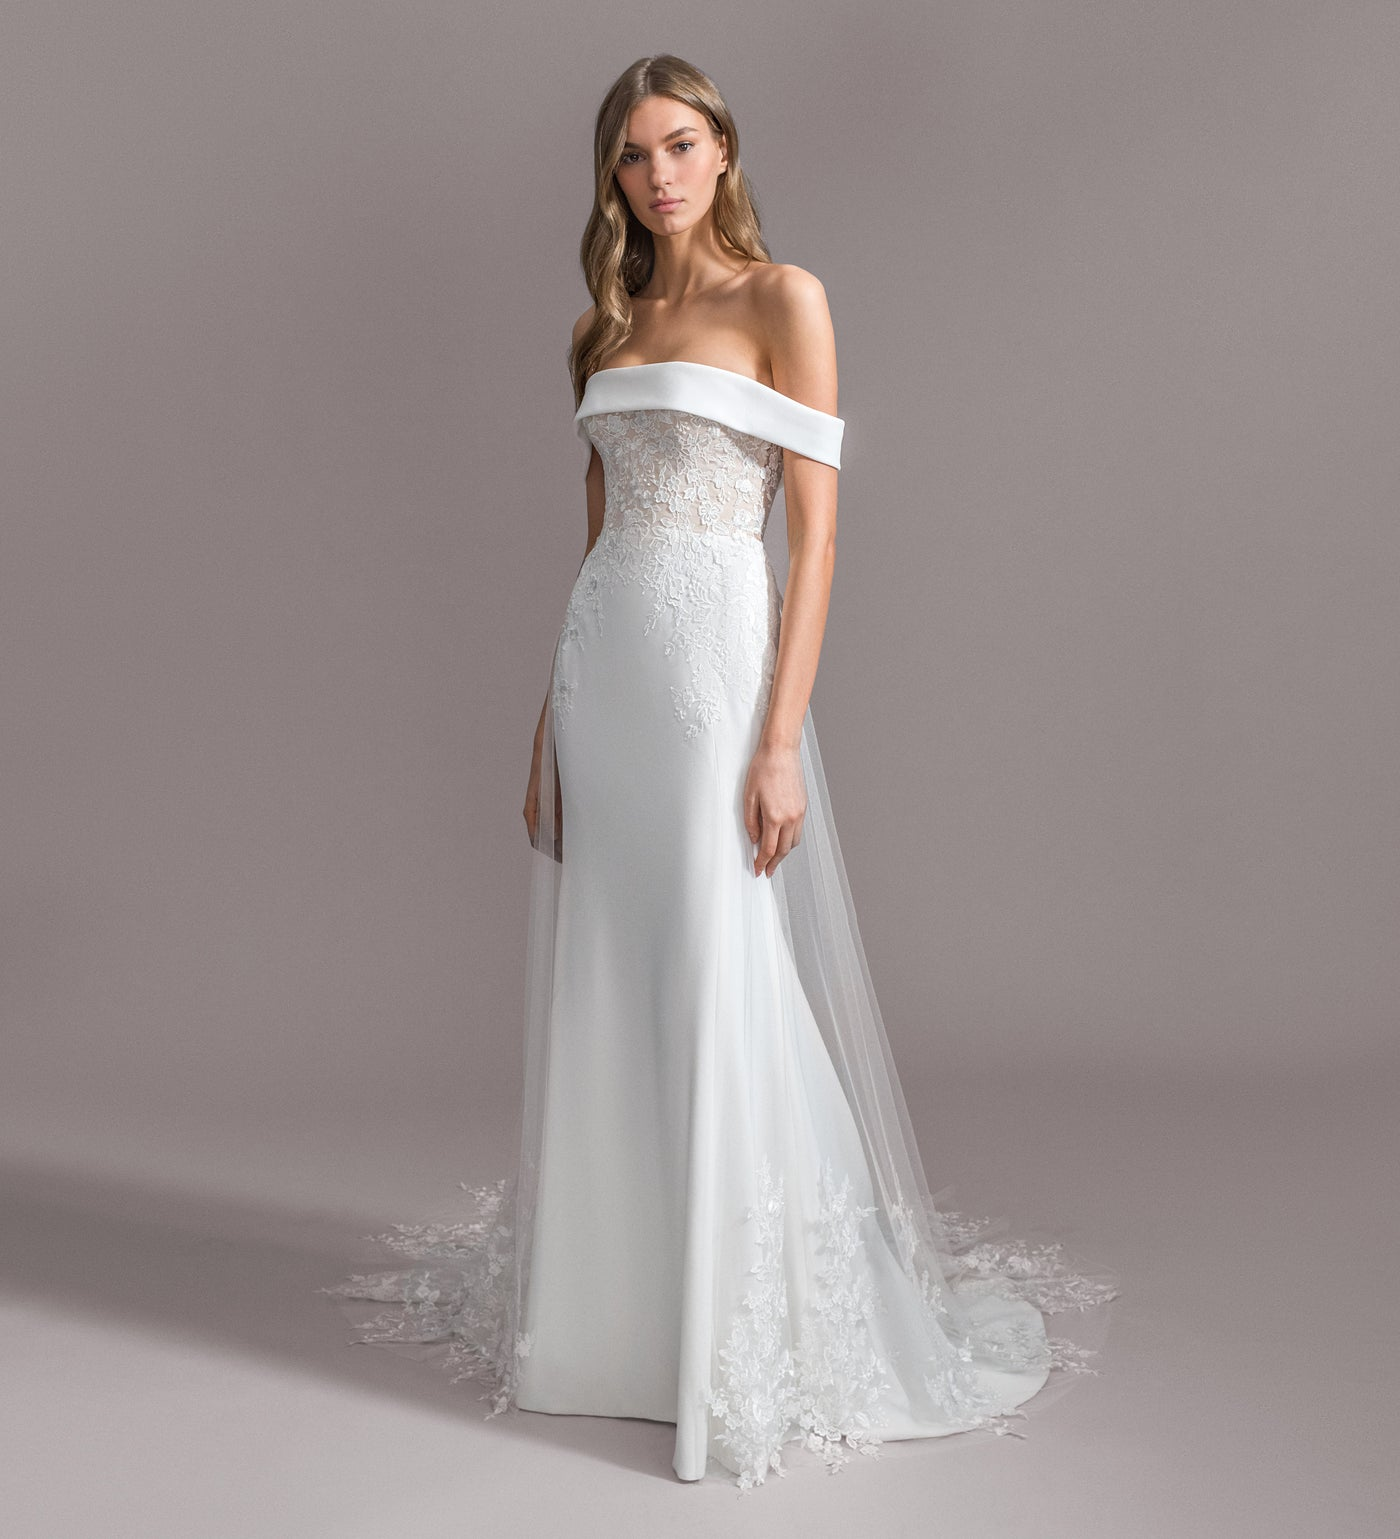 Allegra - New, Gown, Ti Adora by Allison Webb - Eternal Bridal